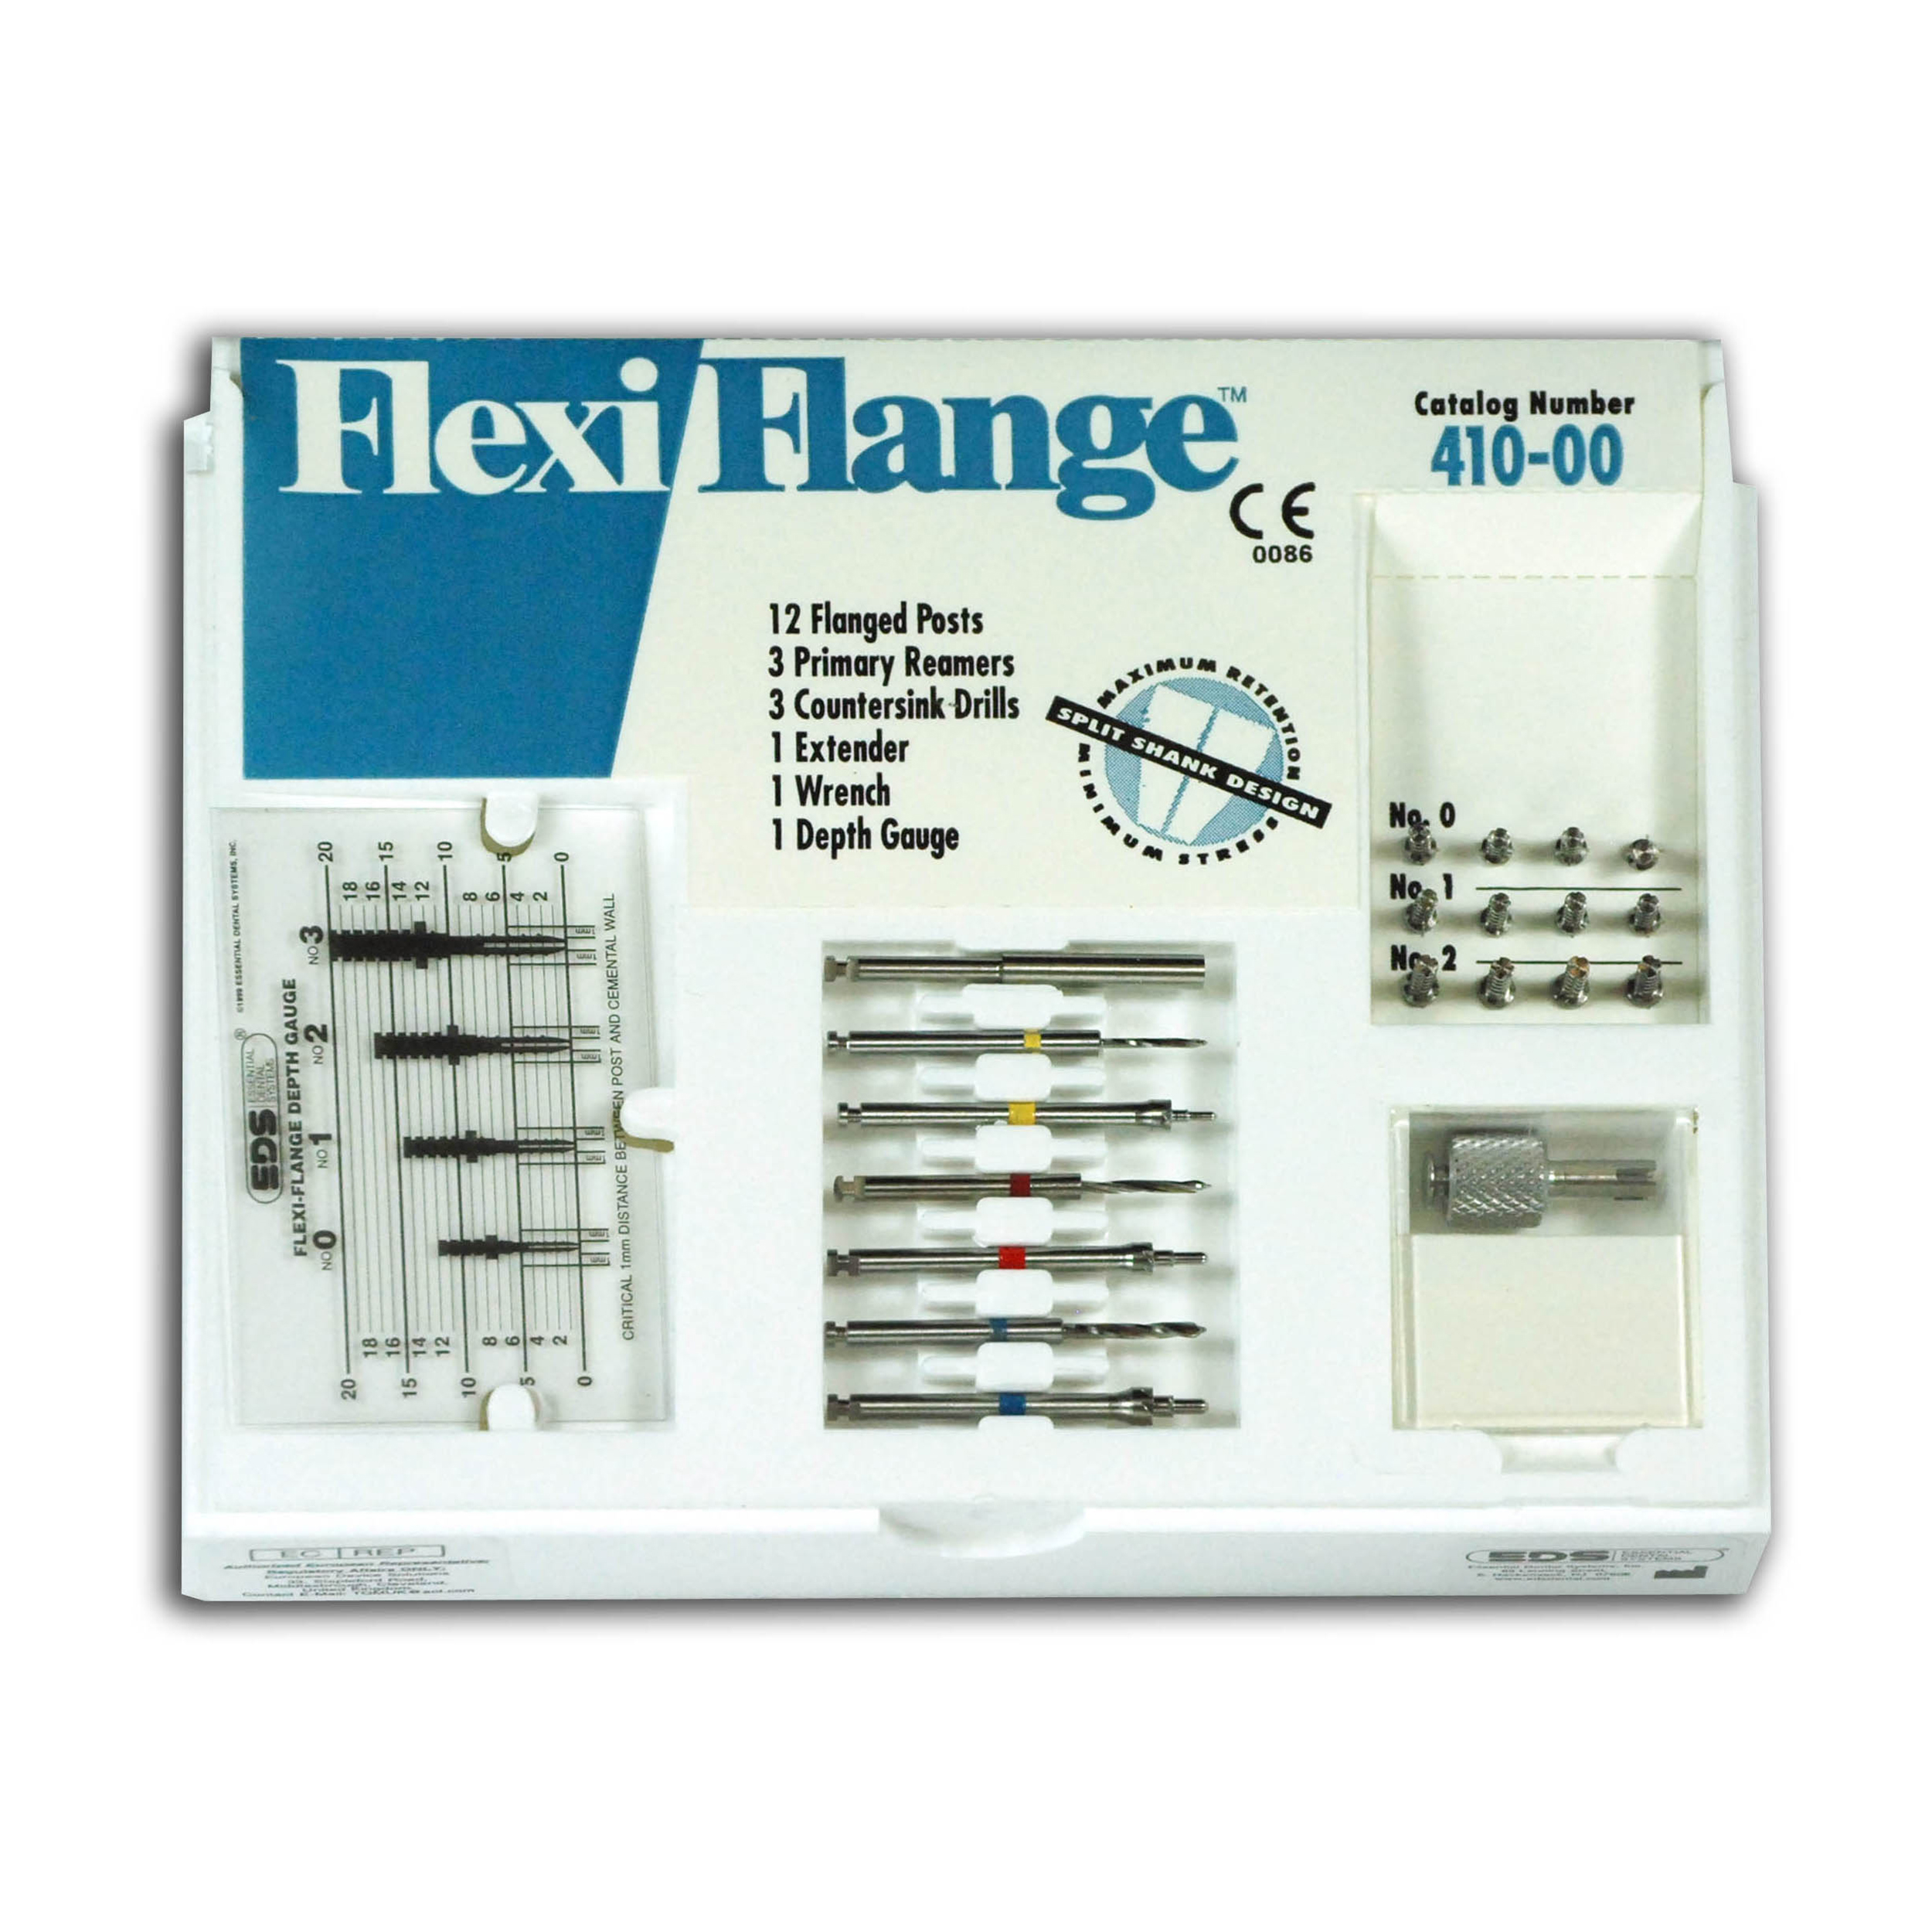 9530730 Flexi-Flange Stainless Steel Intro Kit, 410-00